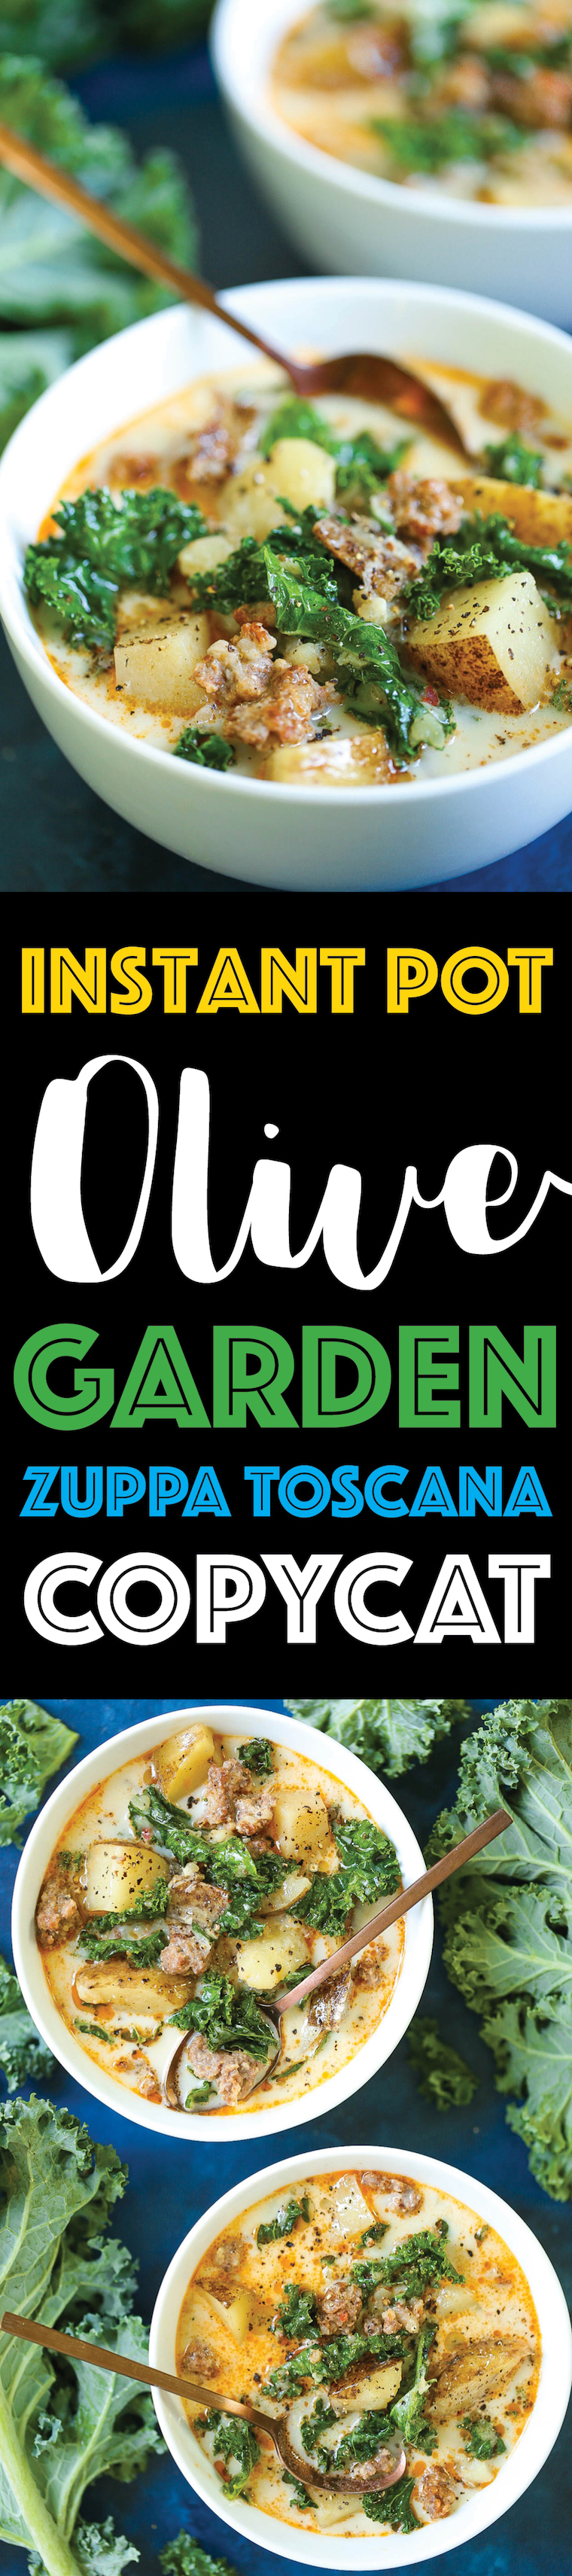 Instant Pot Olive Garden Zuppa Toscana Copycat - This copycat tastes just like the restaurant version except you can make it in the pressure cooker. It is unbelievably easy and effortless – anyone can make it! It is basically fool-proof. Promise!